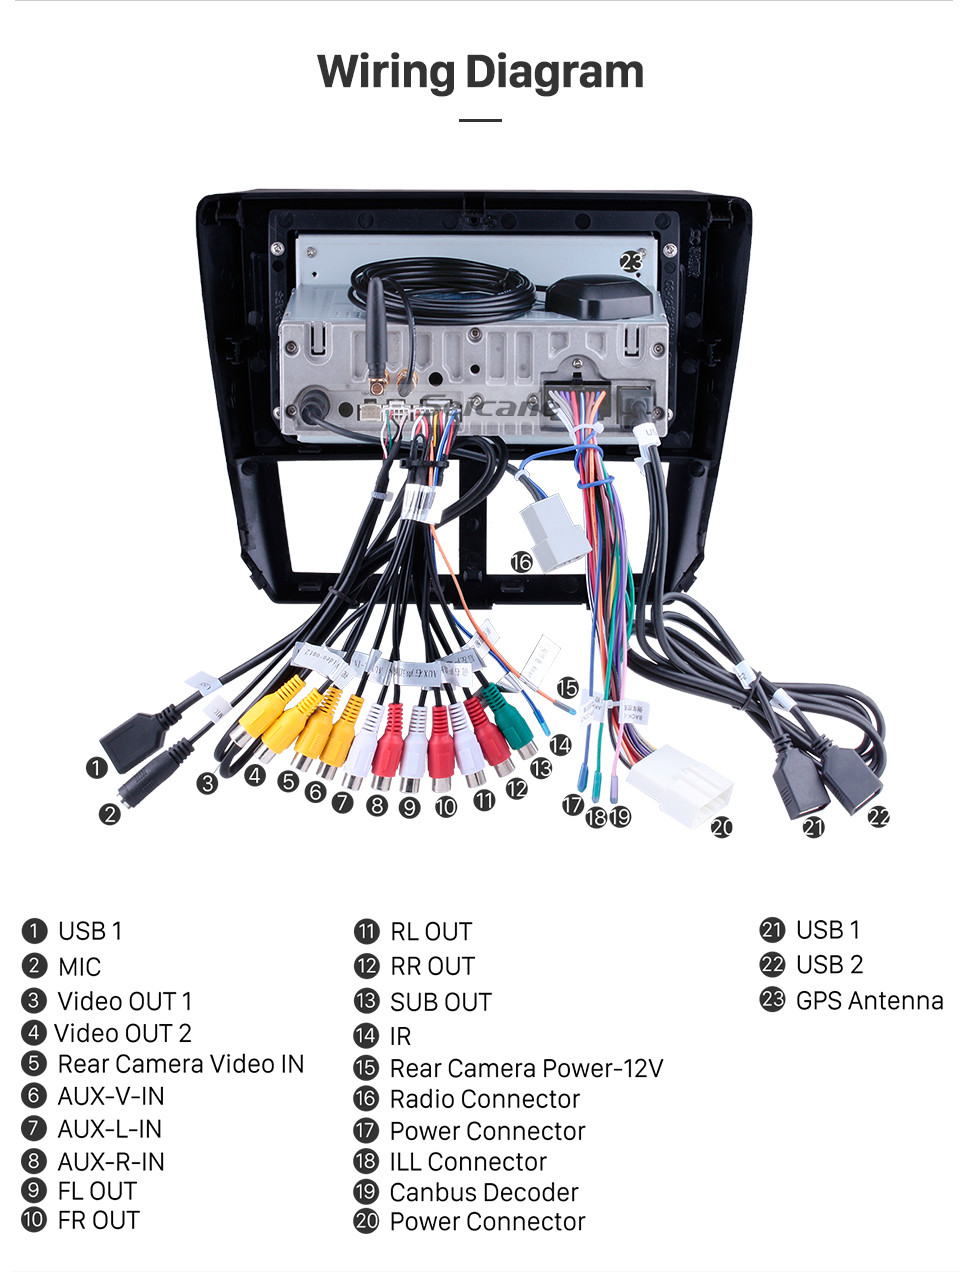 2009 subaru forester wiring diagram yt 9323  center console aux in and usb in wiring diagram subaru  center console aux in and usb in wiring